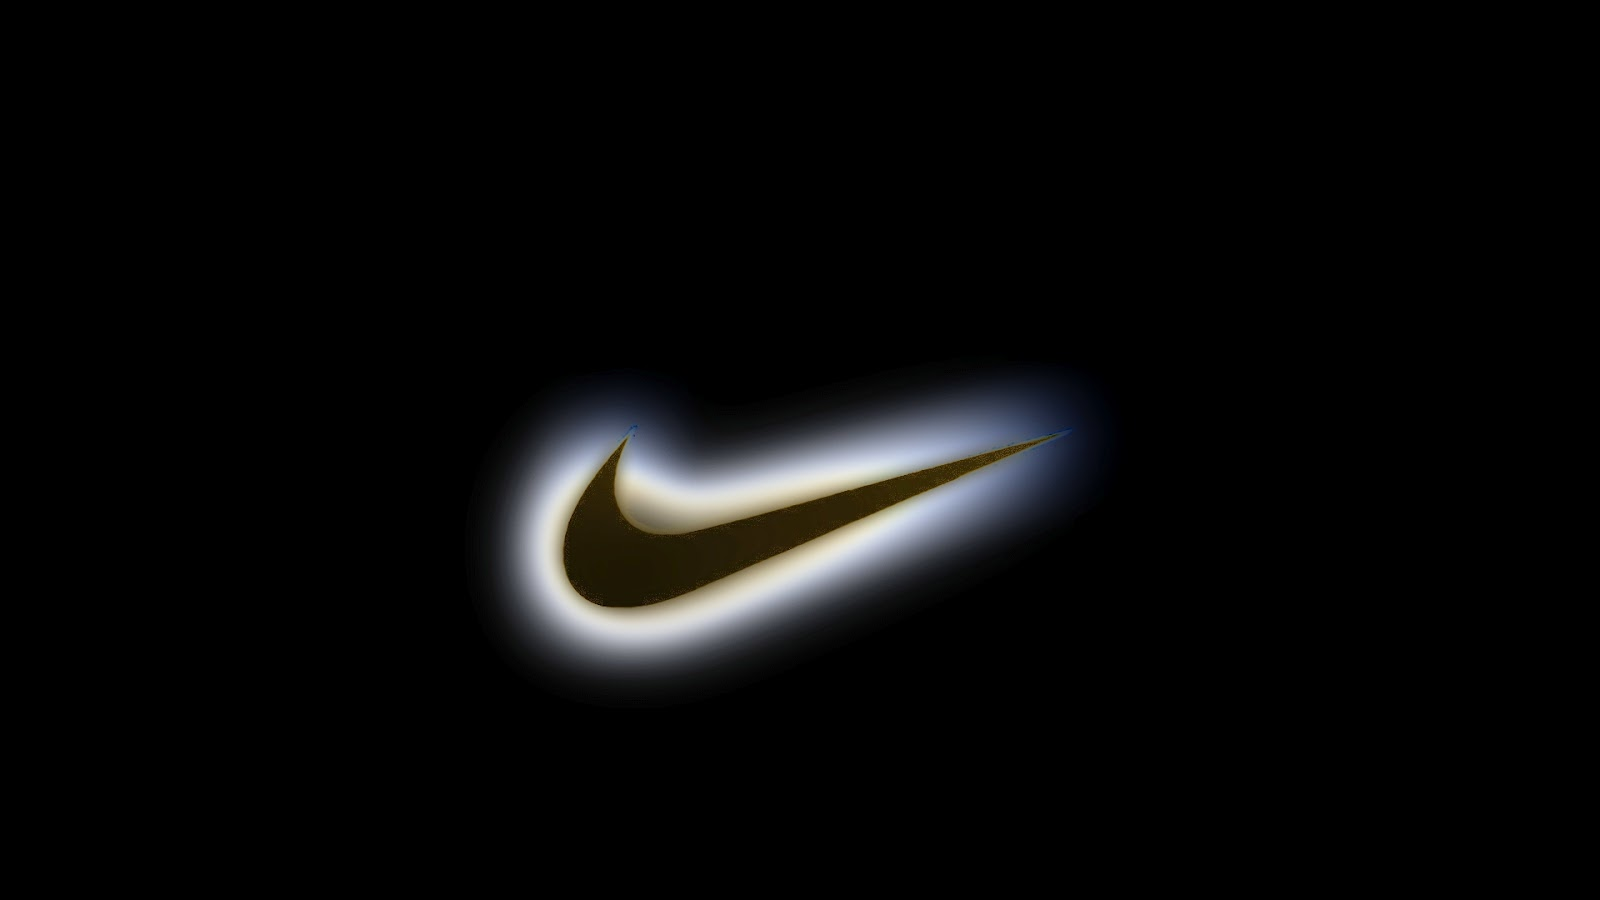 wallpaper nike signs - photo #21